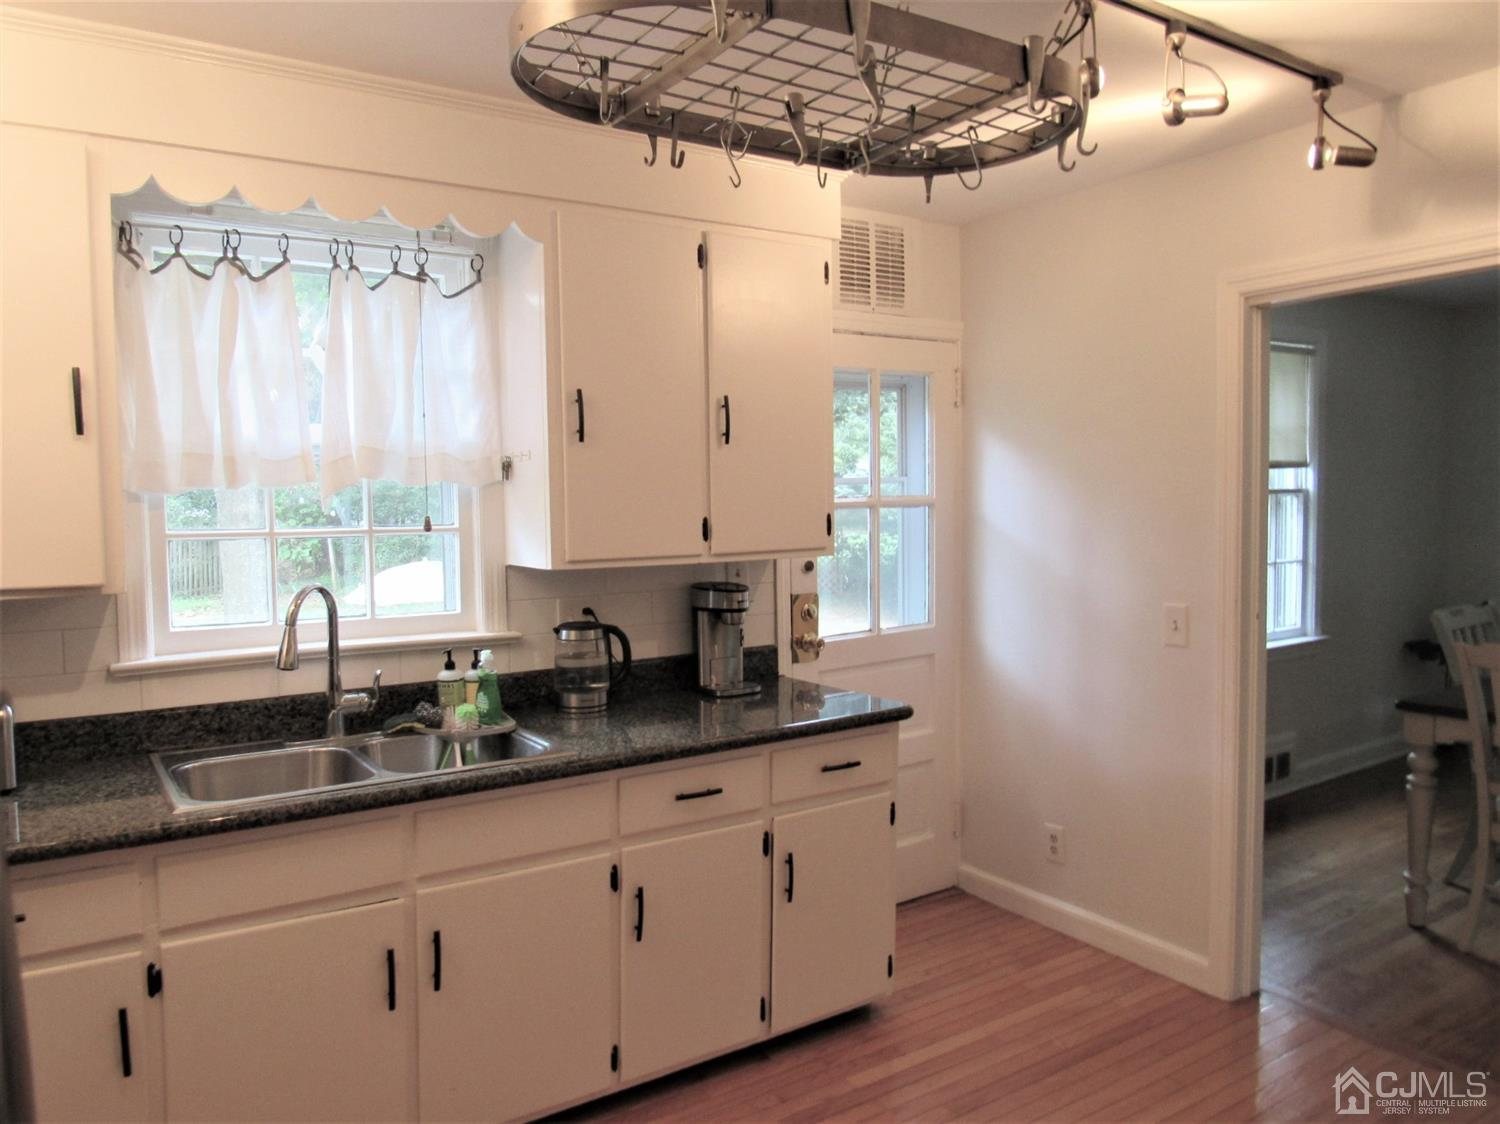 Kitchen with Rear Entrance